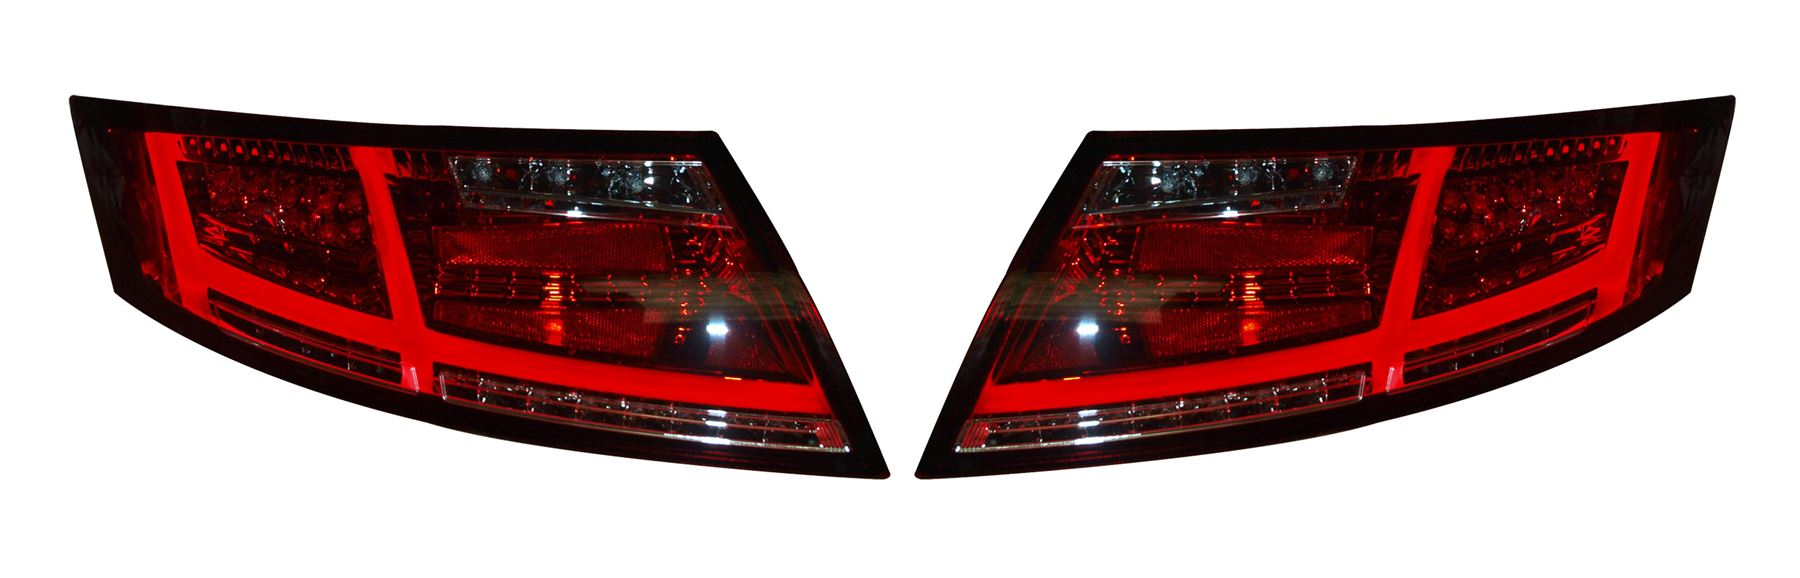 Audi Tt Mk2 2006 2013 Red Clear Led Tail Lights 163 389